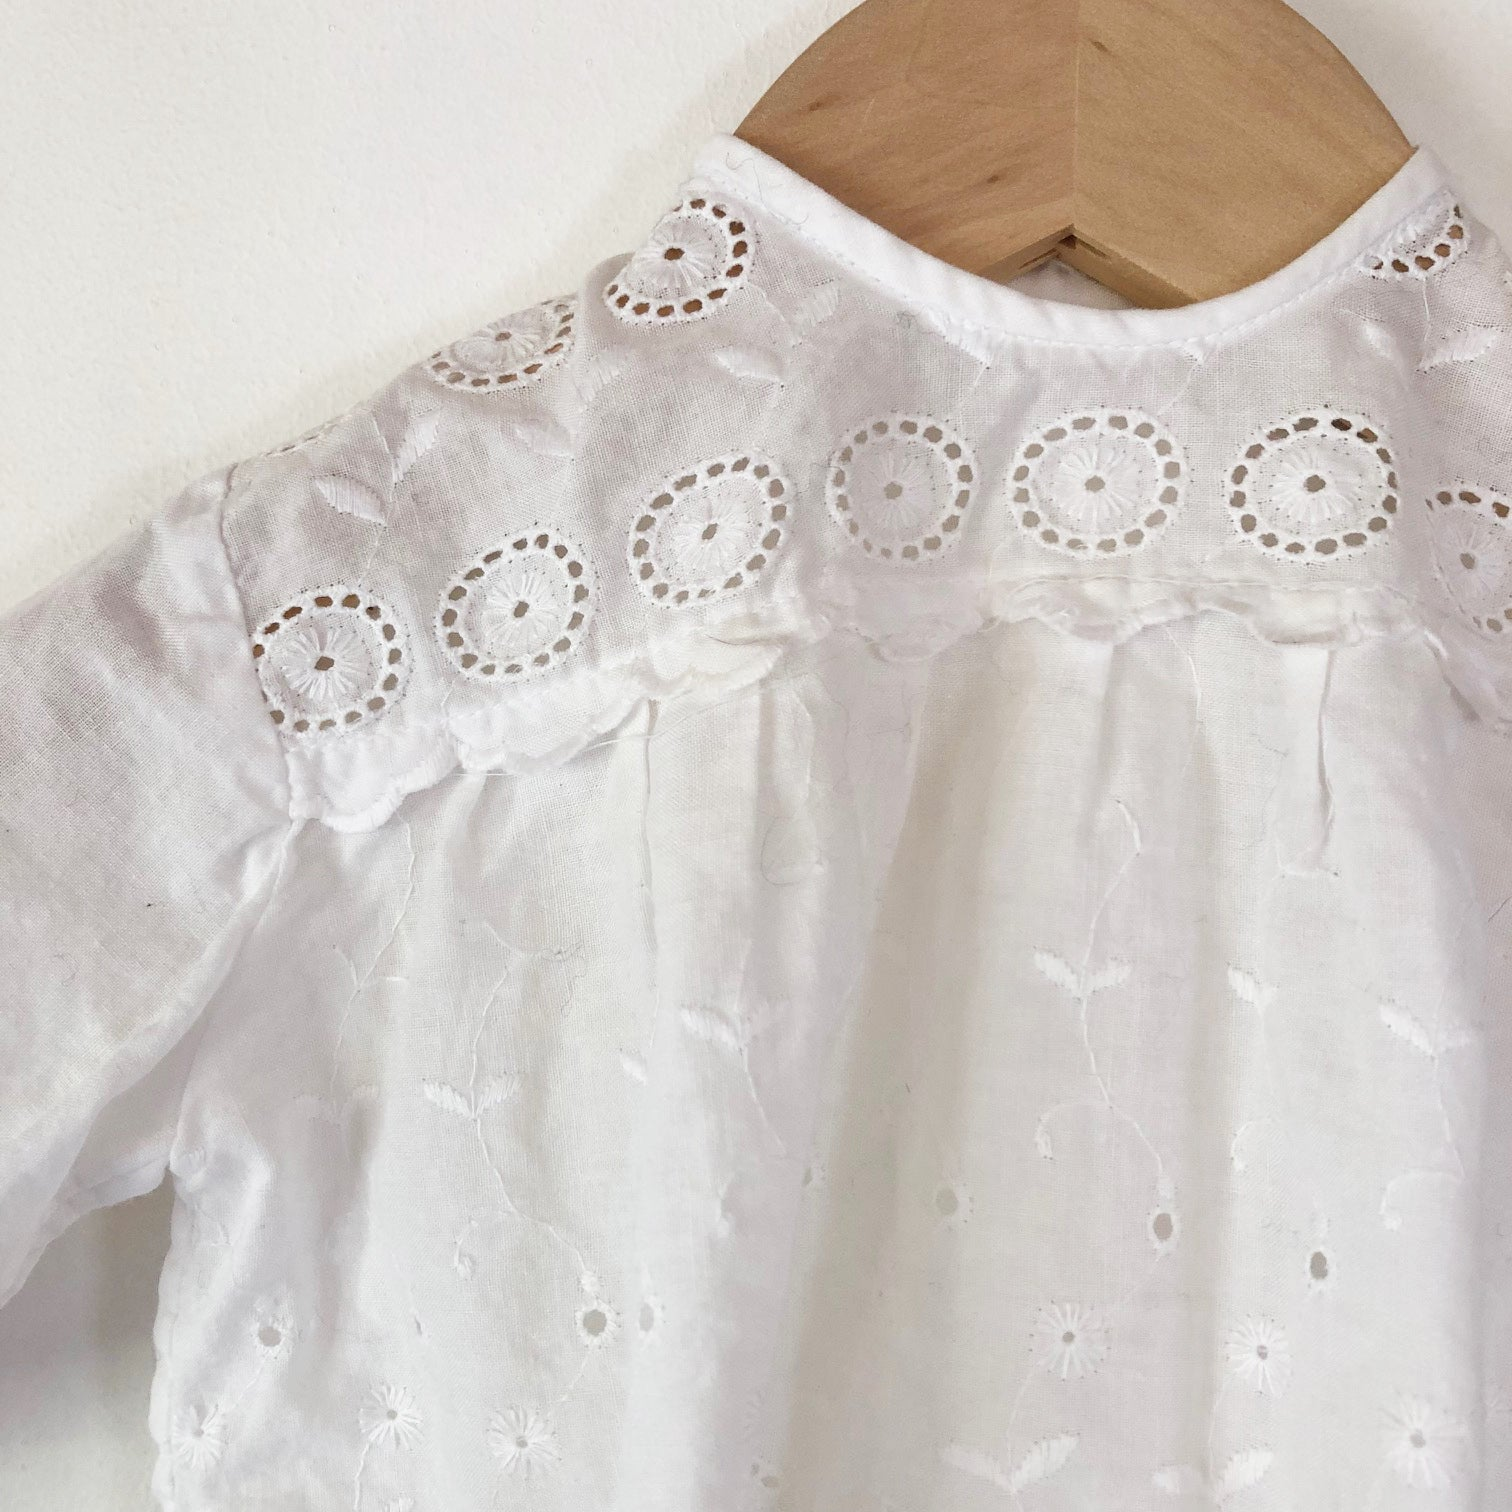 Little Butterly Broderie Anglaise Blouse size 6-12 months